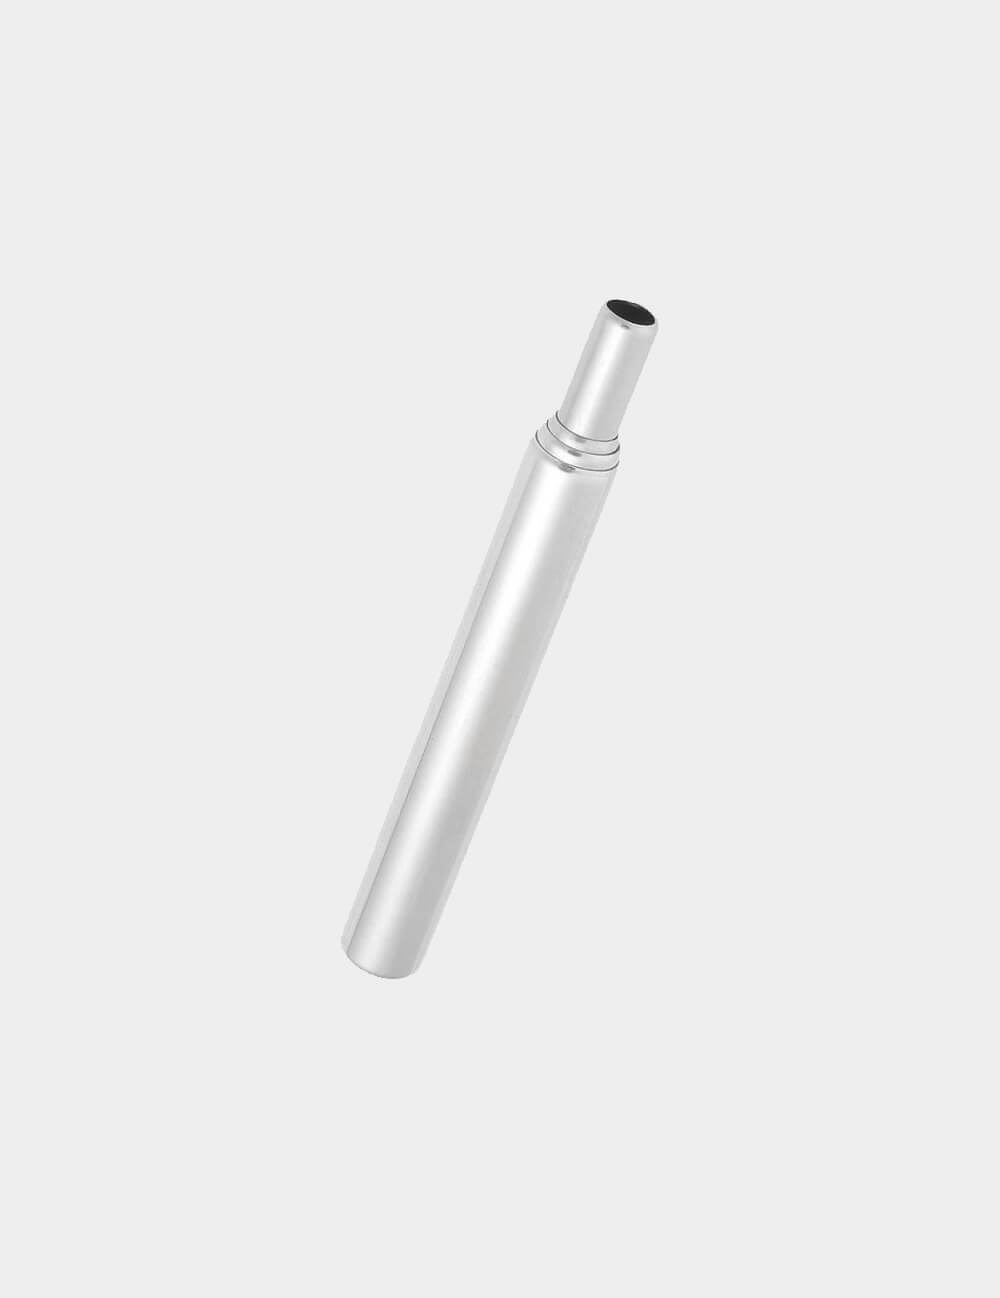 Reusable Stainless Steel Straw Image 3